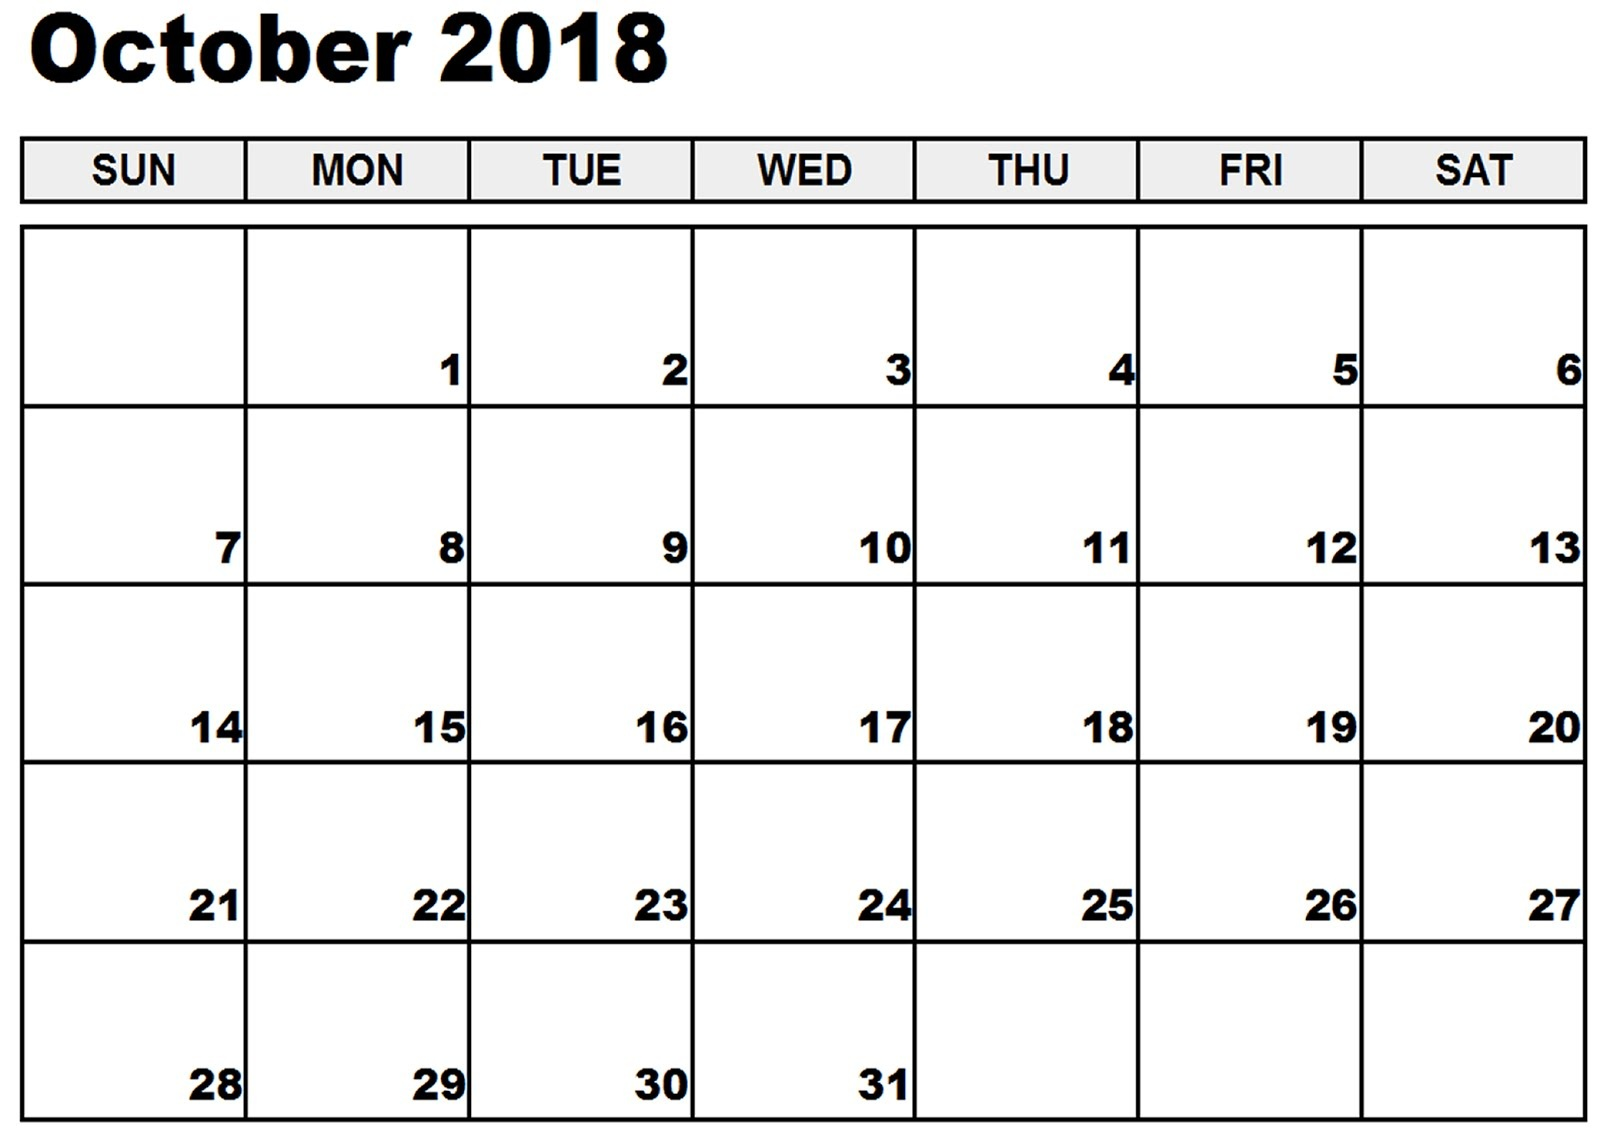 October 2018 Calendar Printable Desk